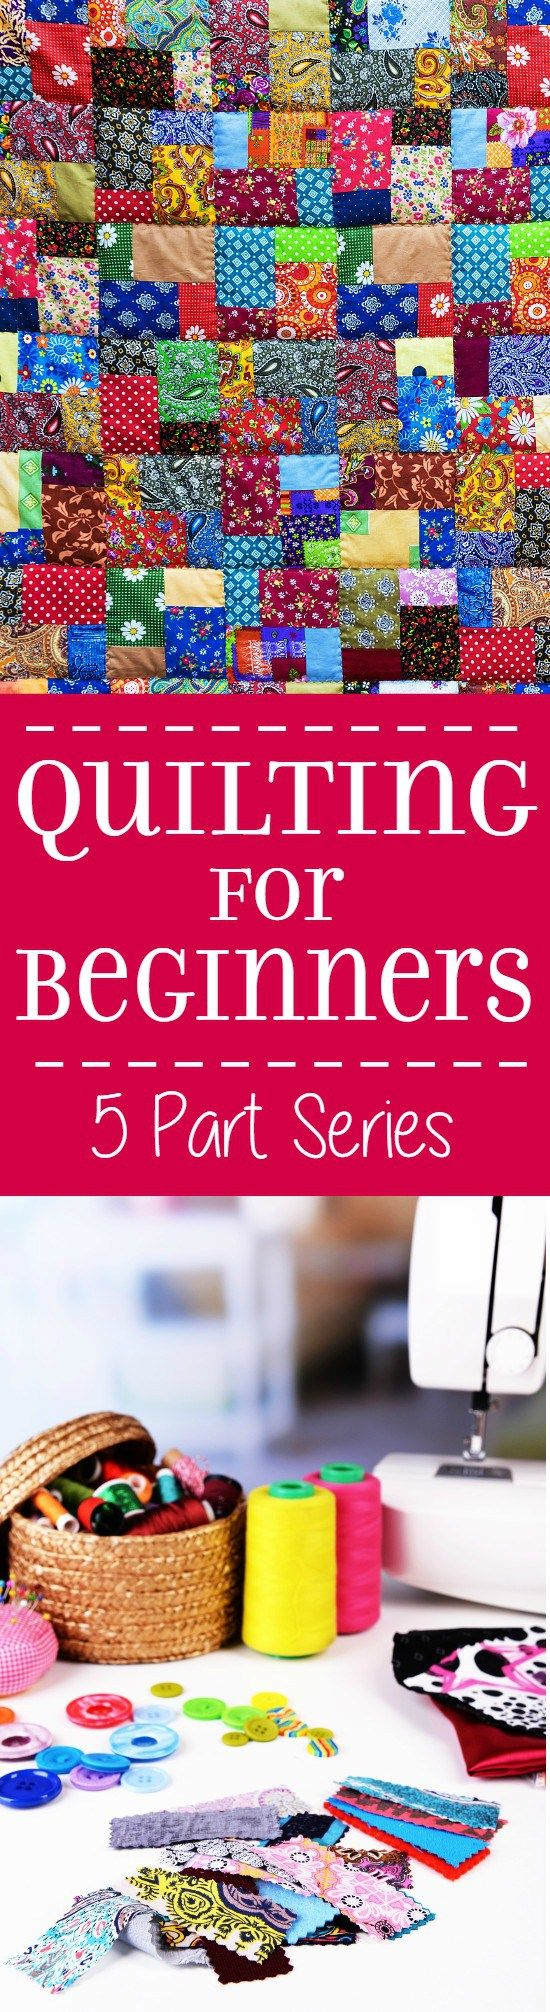 Quilting for Beginners: Make beautiful DIY quilts even if you're a quilting or sewing newbie. A tutorial and tip guide for making a quilt from start to finish. Quilting for Beginners teaches newbies how to quilt from the basics, start to finish. This 5 part series walks you through each step of quilt making.: